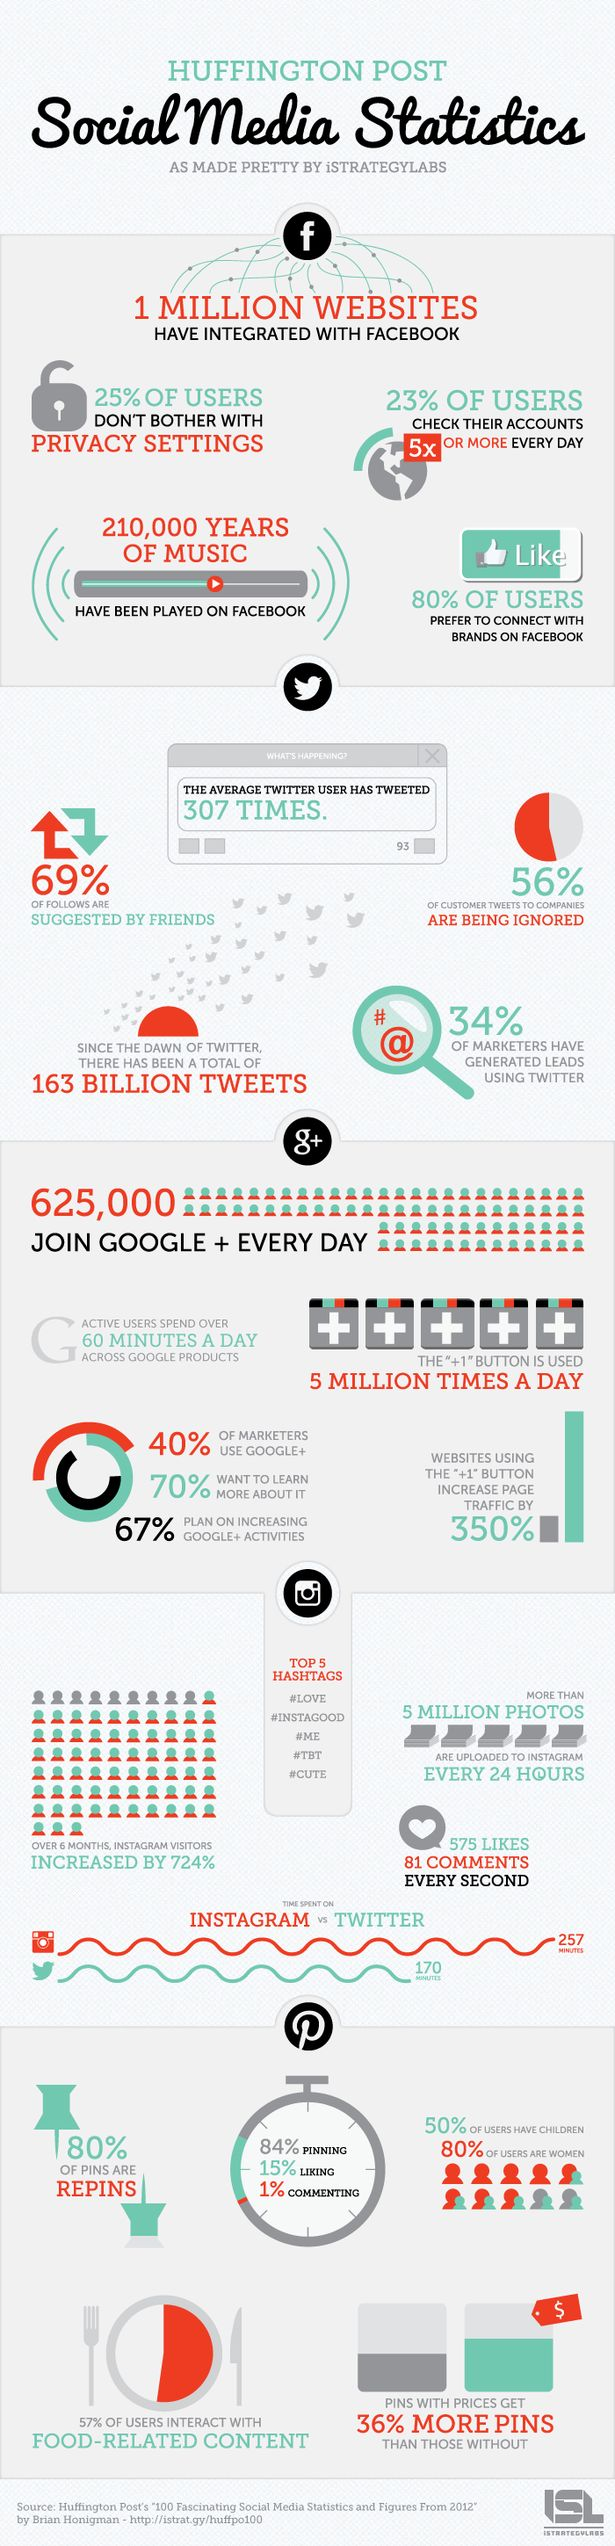 Social Media Statistics That Affect Your Marketing Plan.  Think you know who's on which network? #INFOGRAPHIC